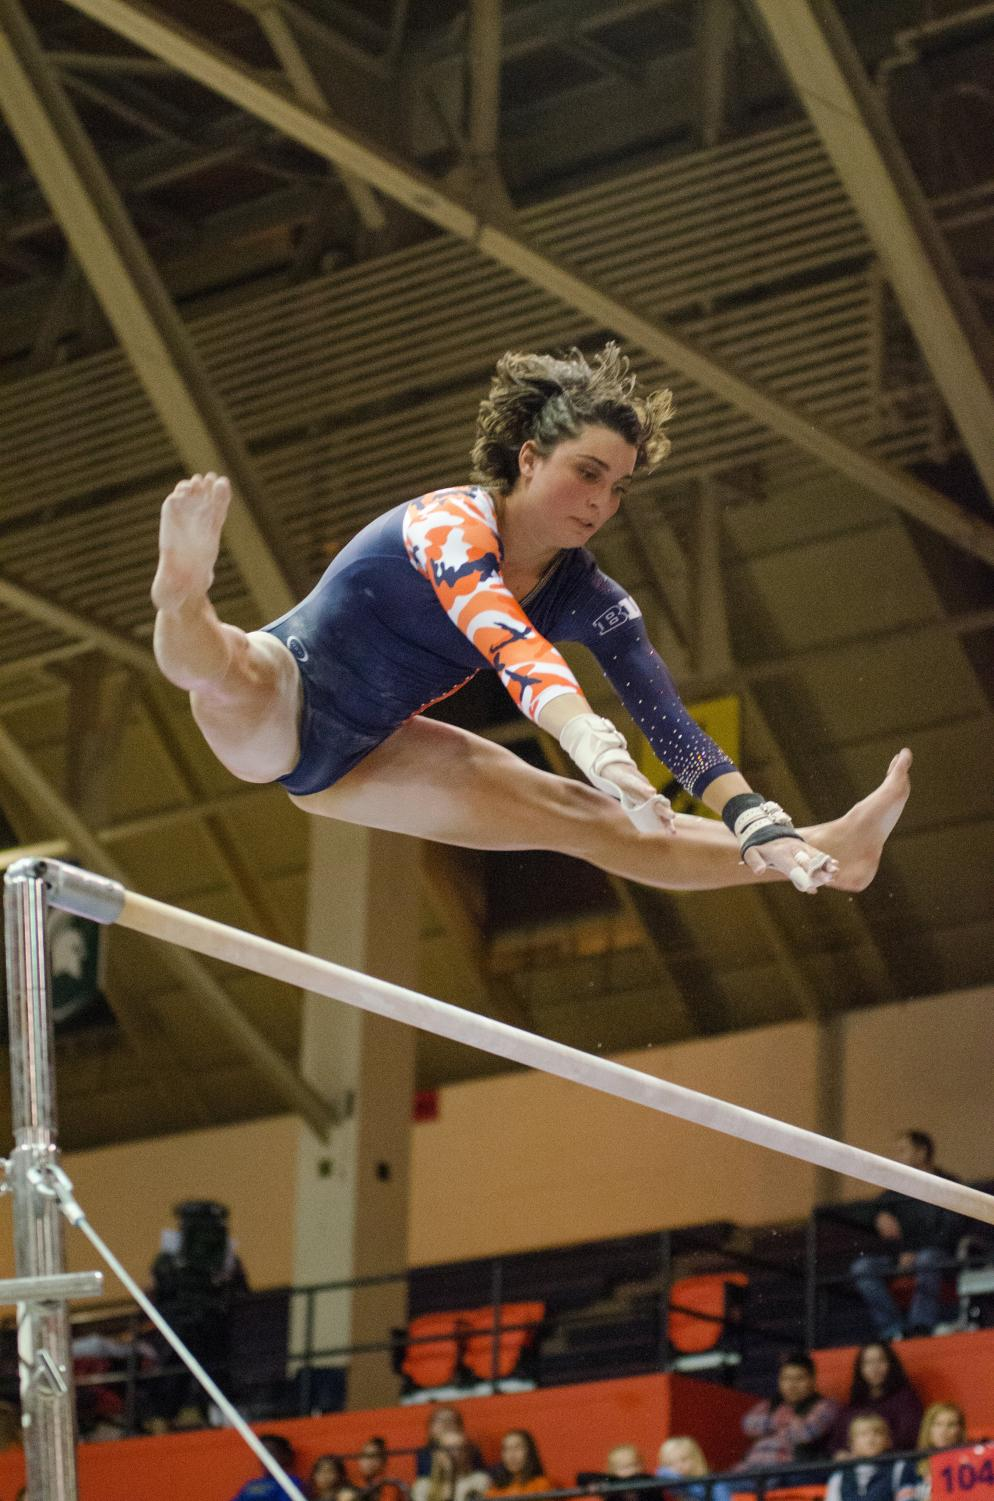 Rae Balthazor performs her bars routine during Illinois' meet against Michigan on Jan. 19, 2018. Illinois lost to Michigan 194.325 to 194.975.